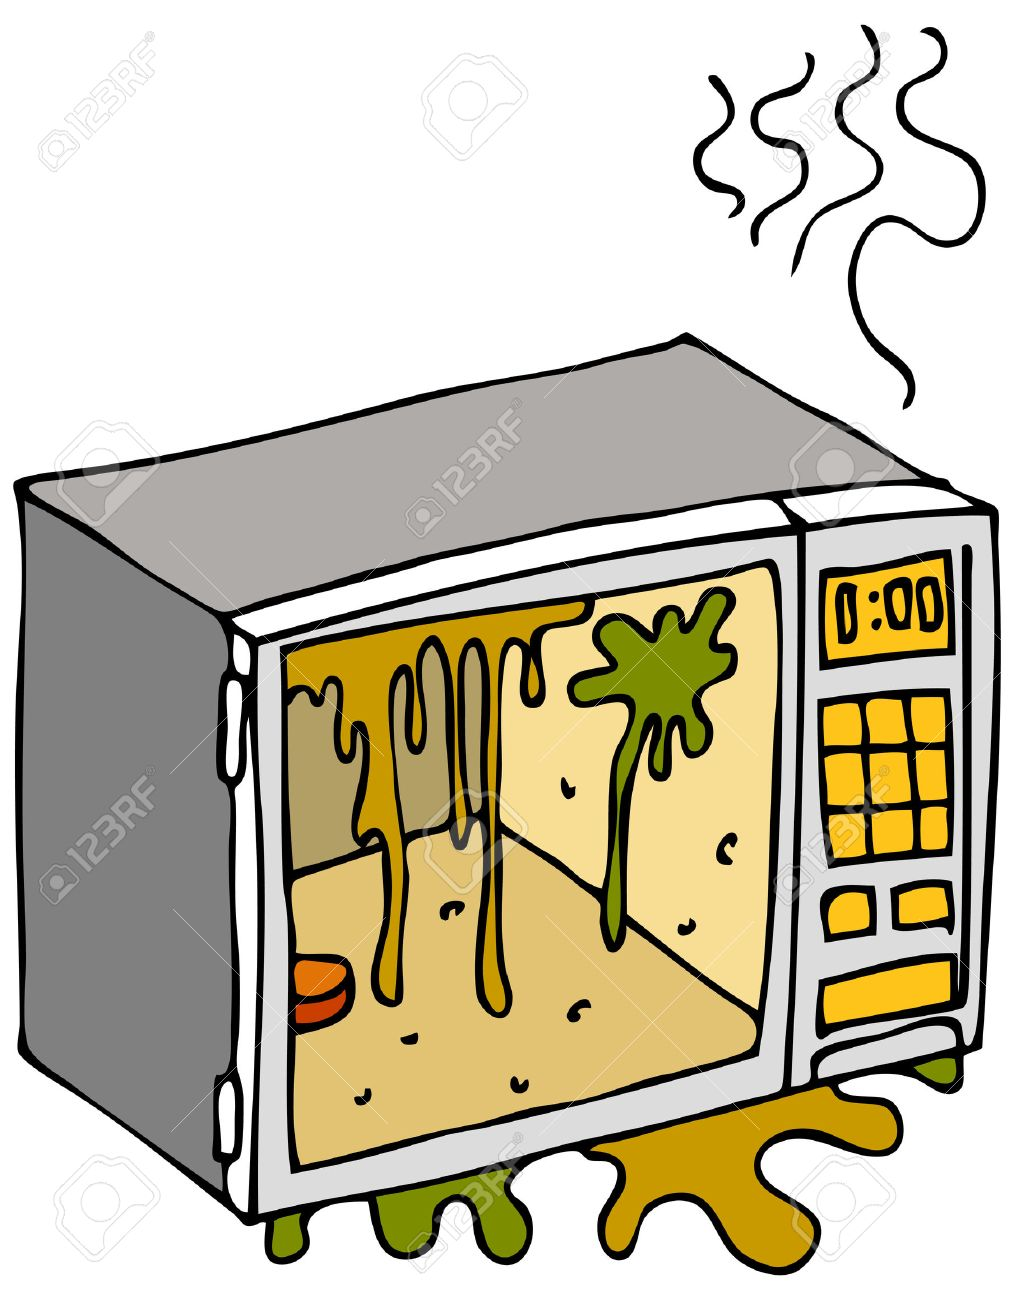 an image of a dirty microwave oven royalty free cliparts vectors rh 123rf com microwave clip art free microwave clipart images